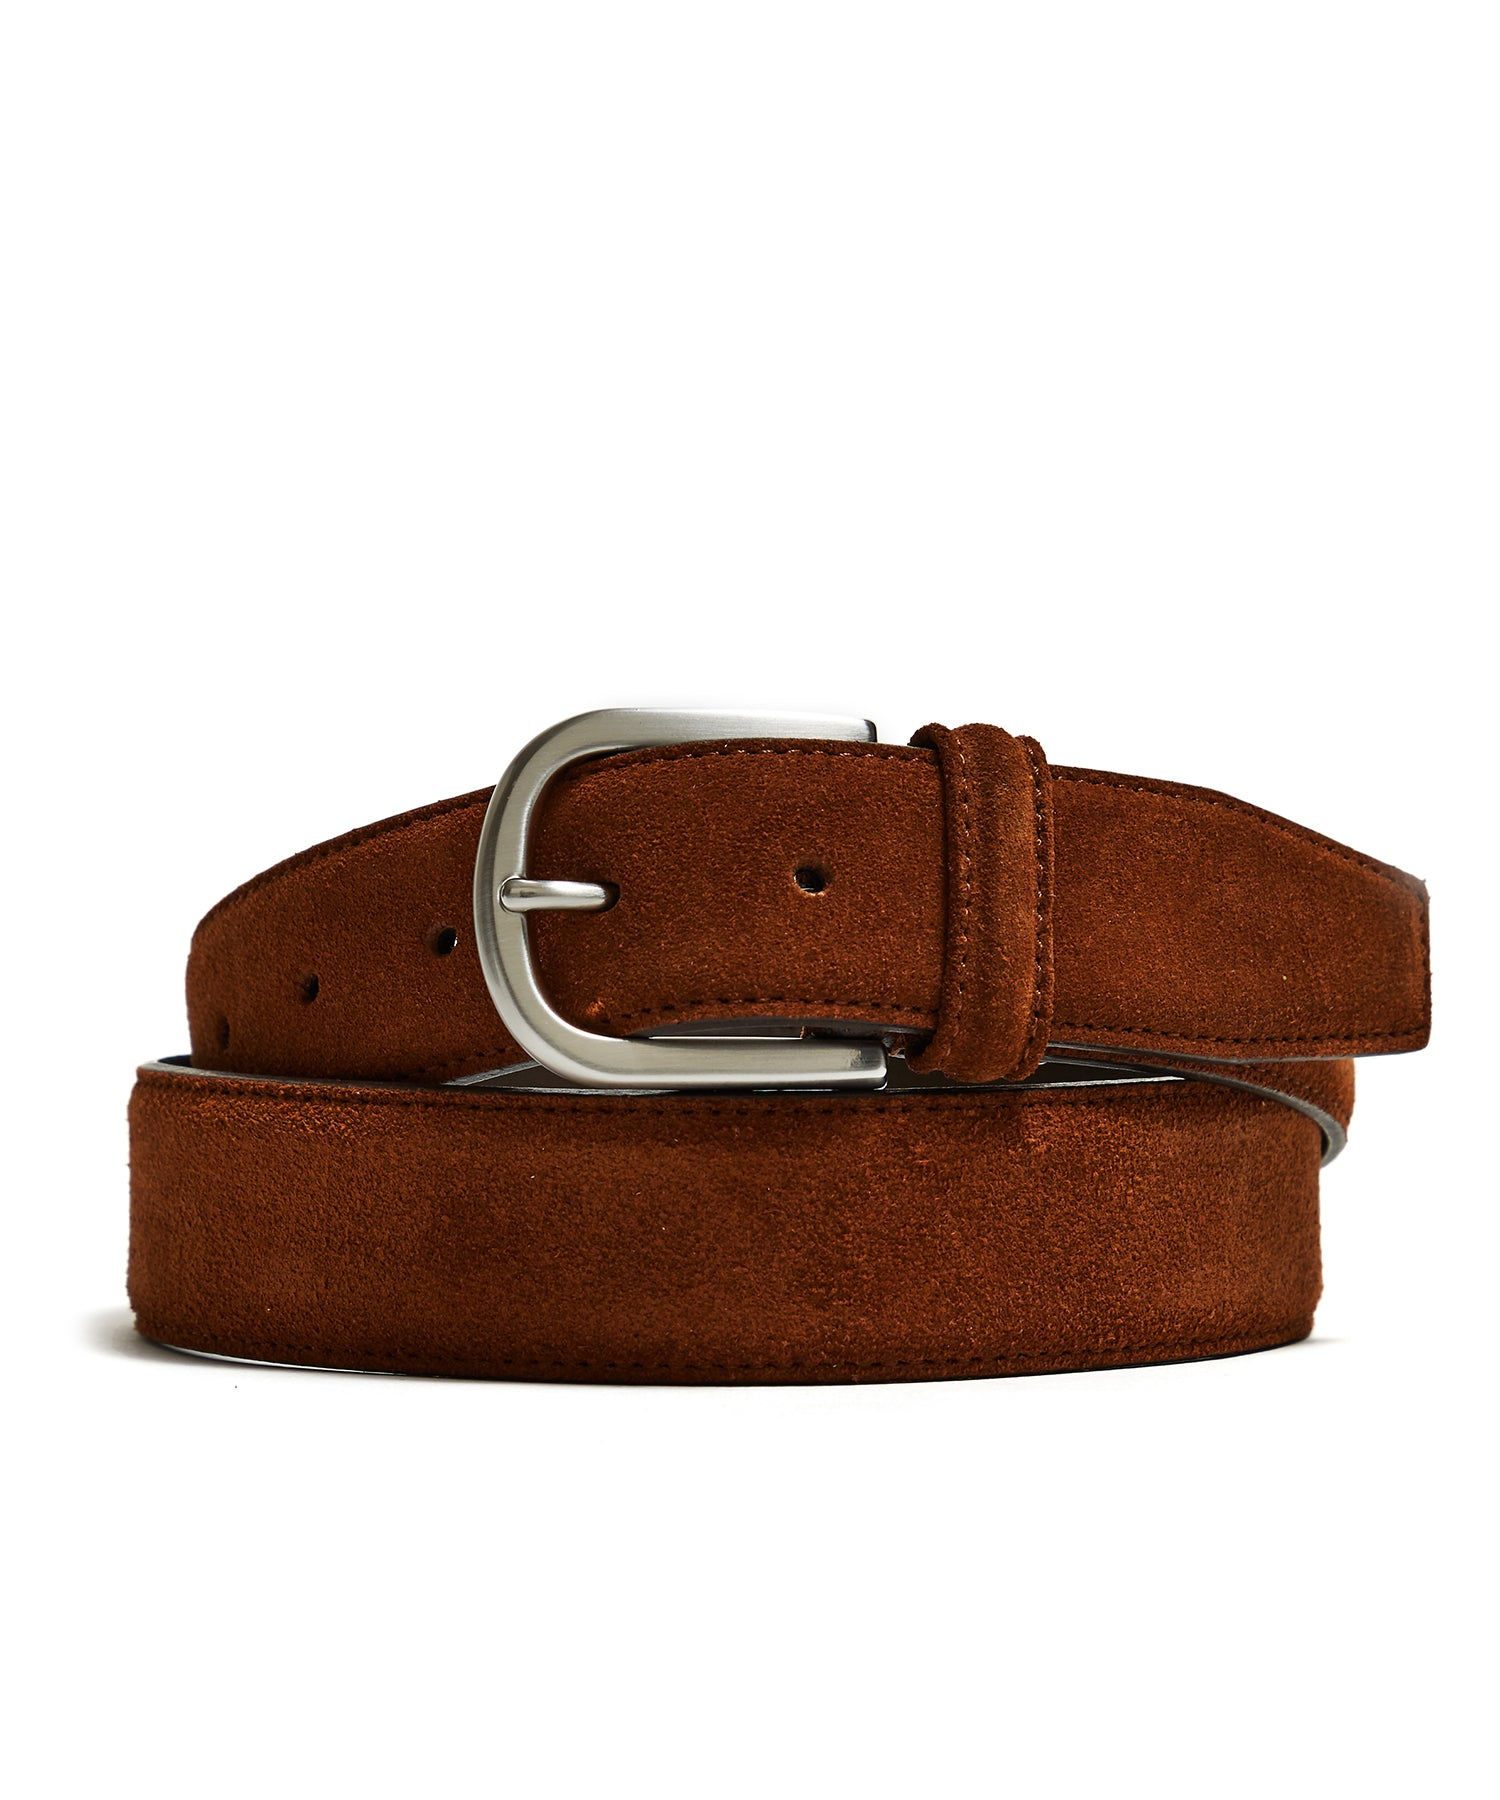 Anderson's Suede Belt in Dark Brown